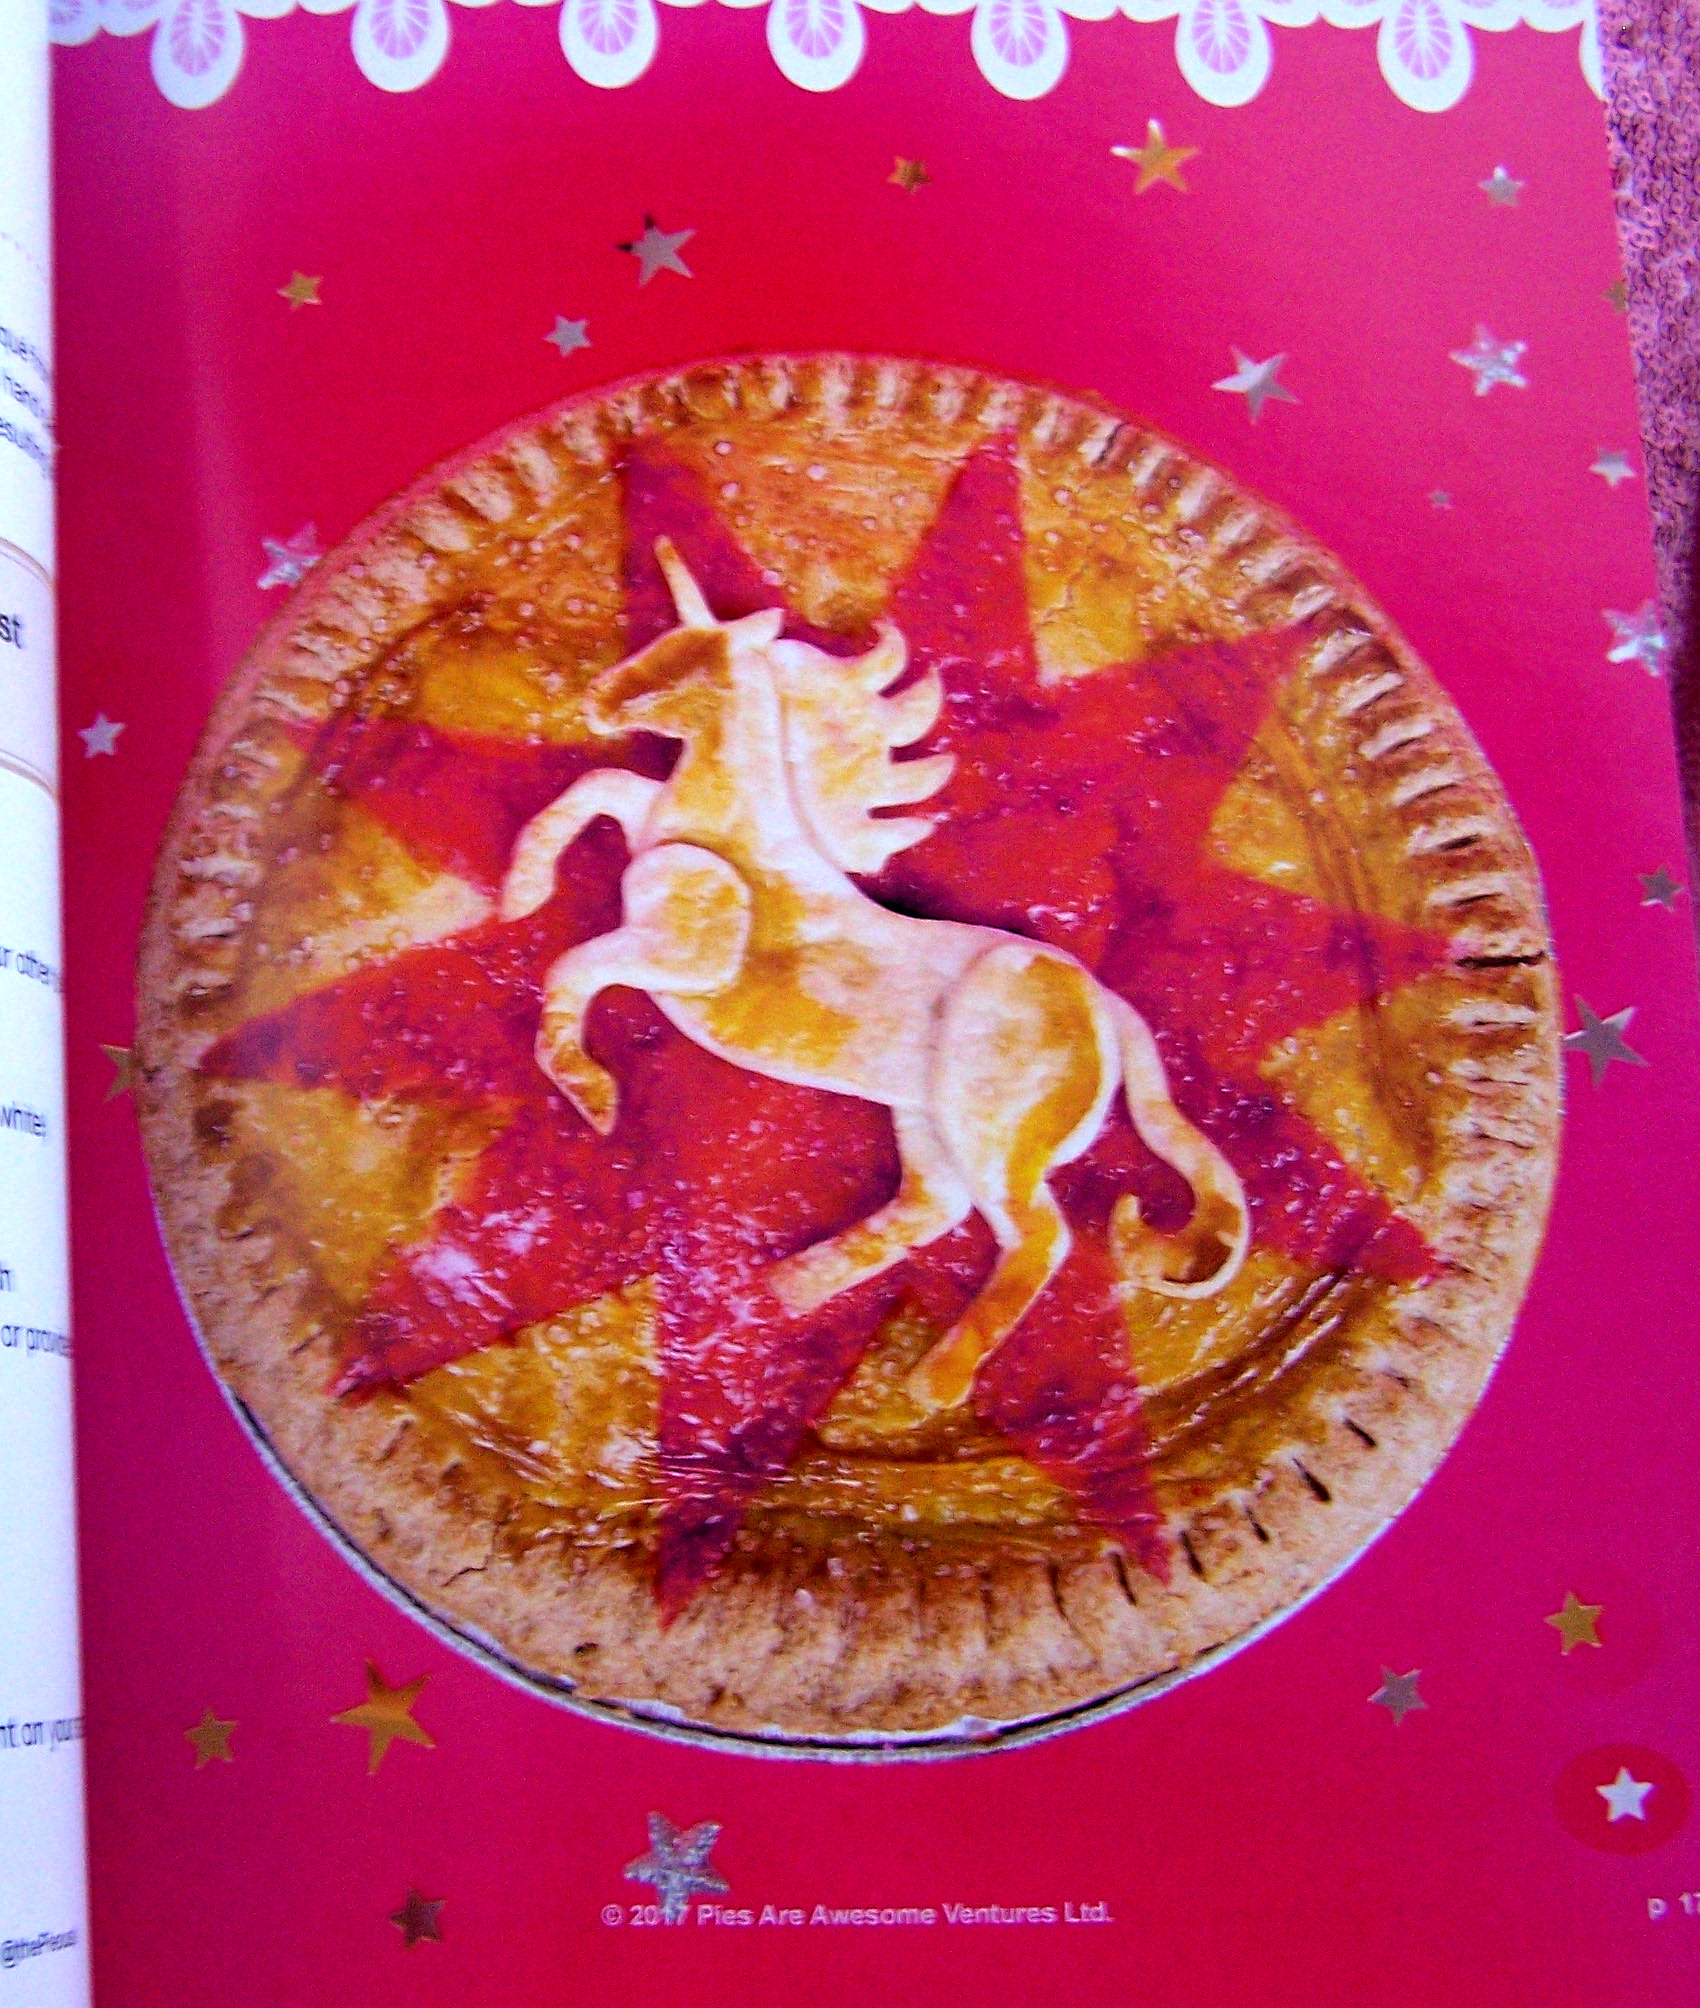 pie-modding unicorn book baking review blog cooking food art craft creative